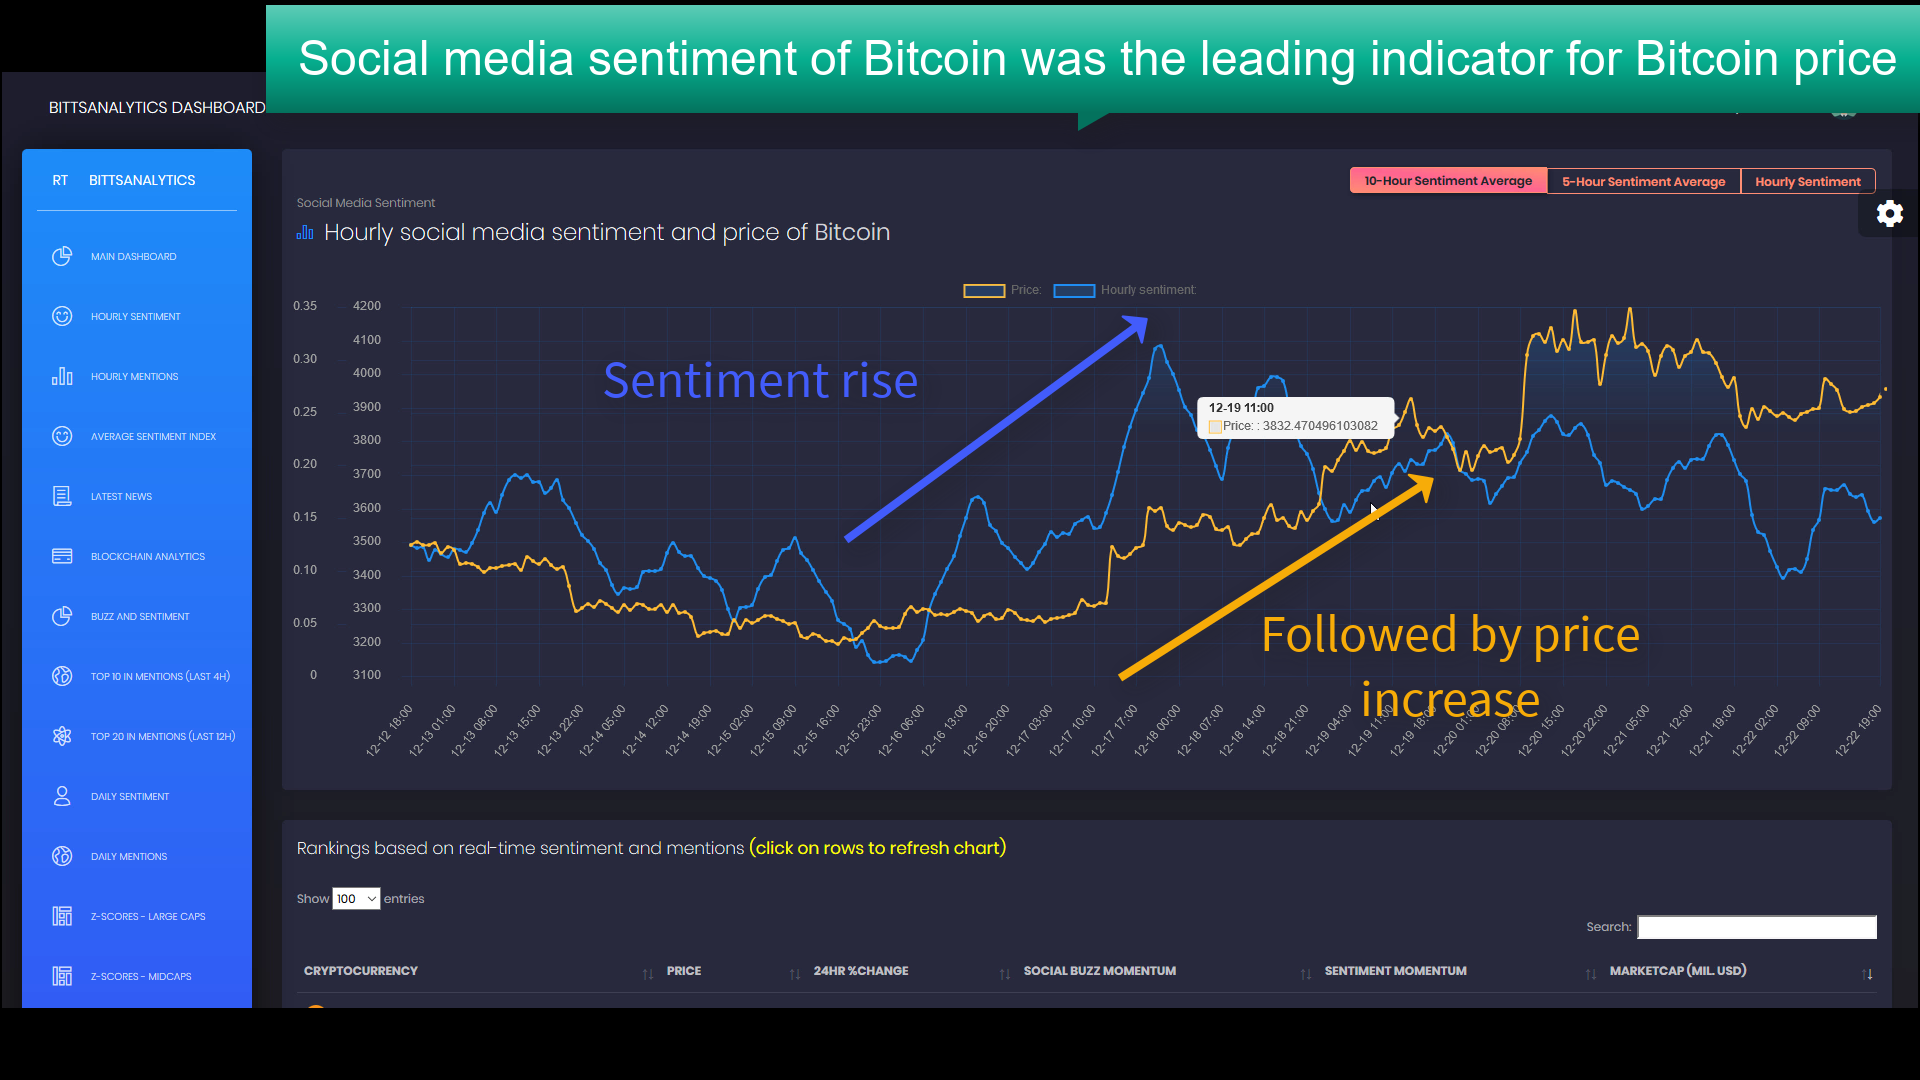 Bitcoin sentiment as leading price indicator